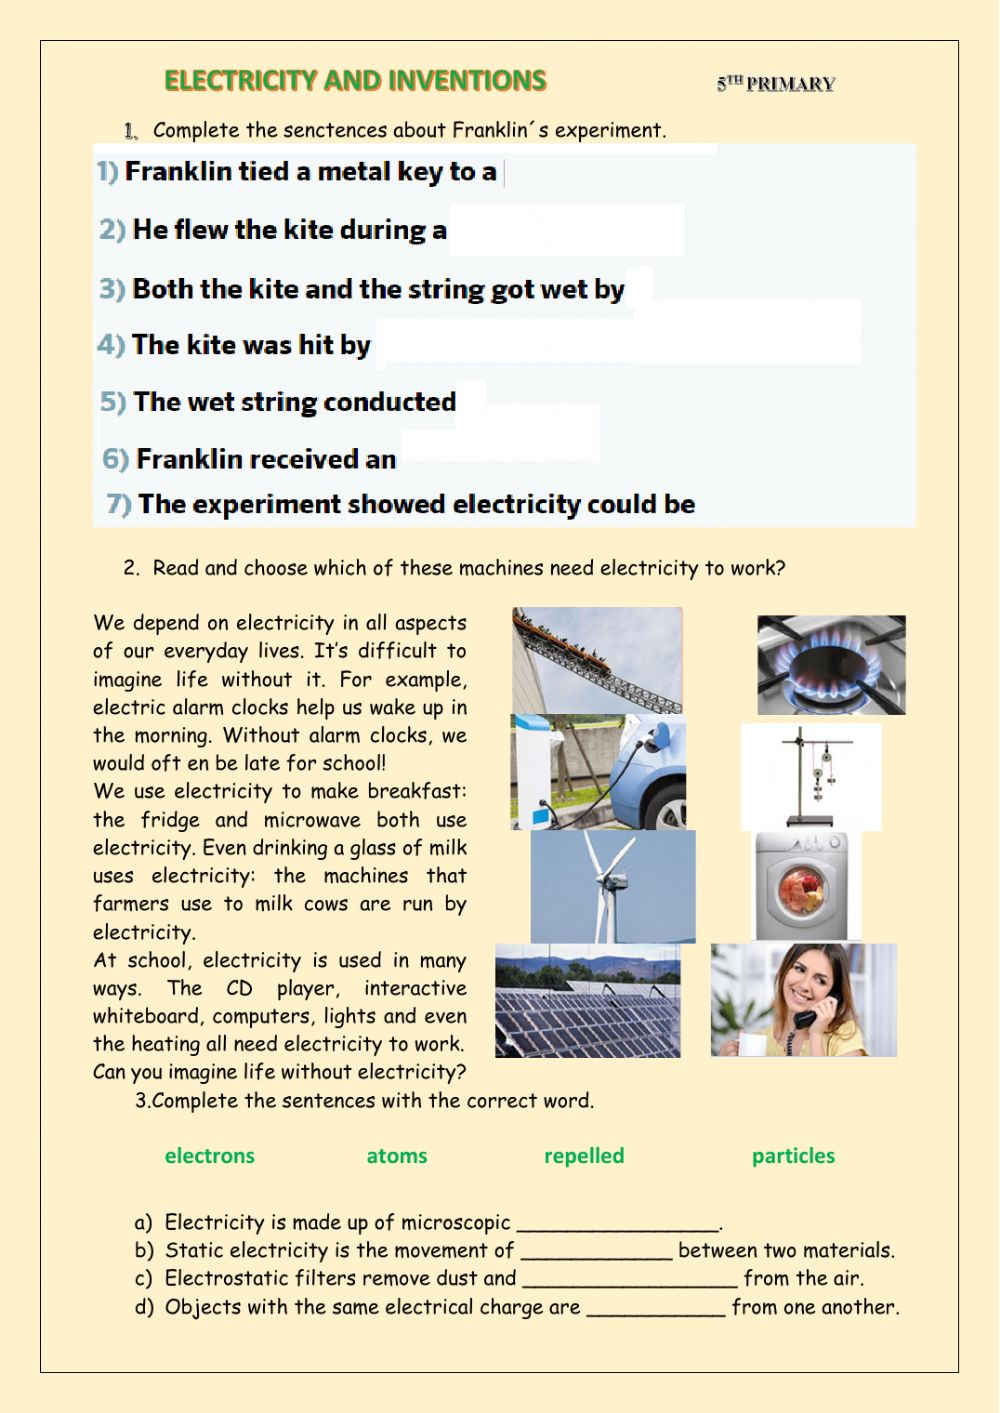 medium resolution of Electricity and inventions 1 worksheet